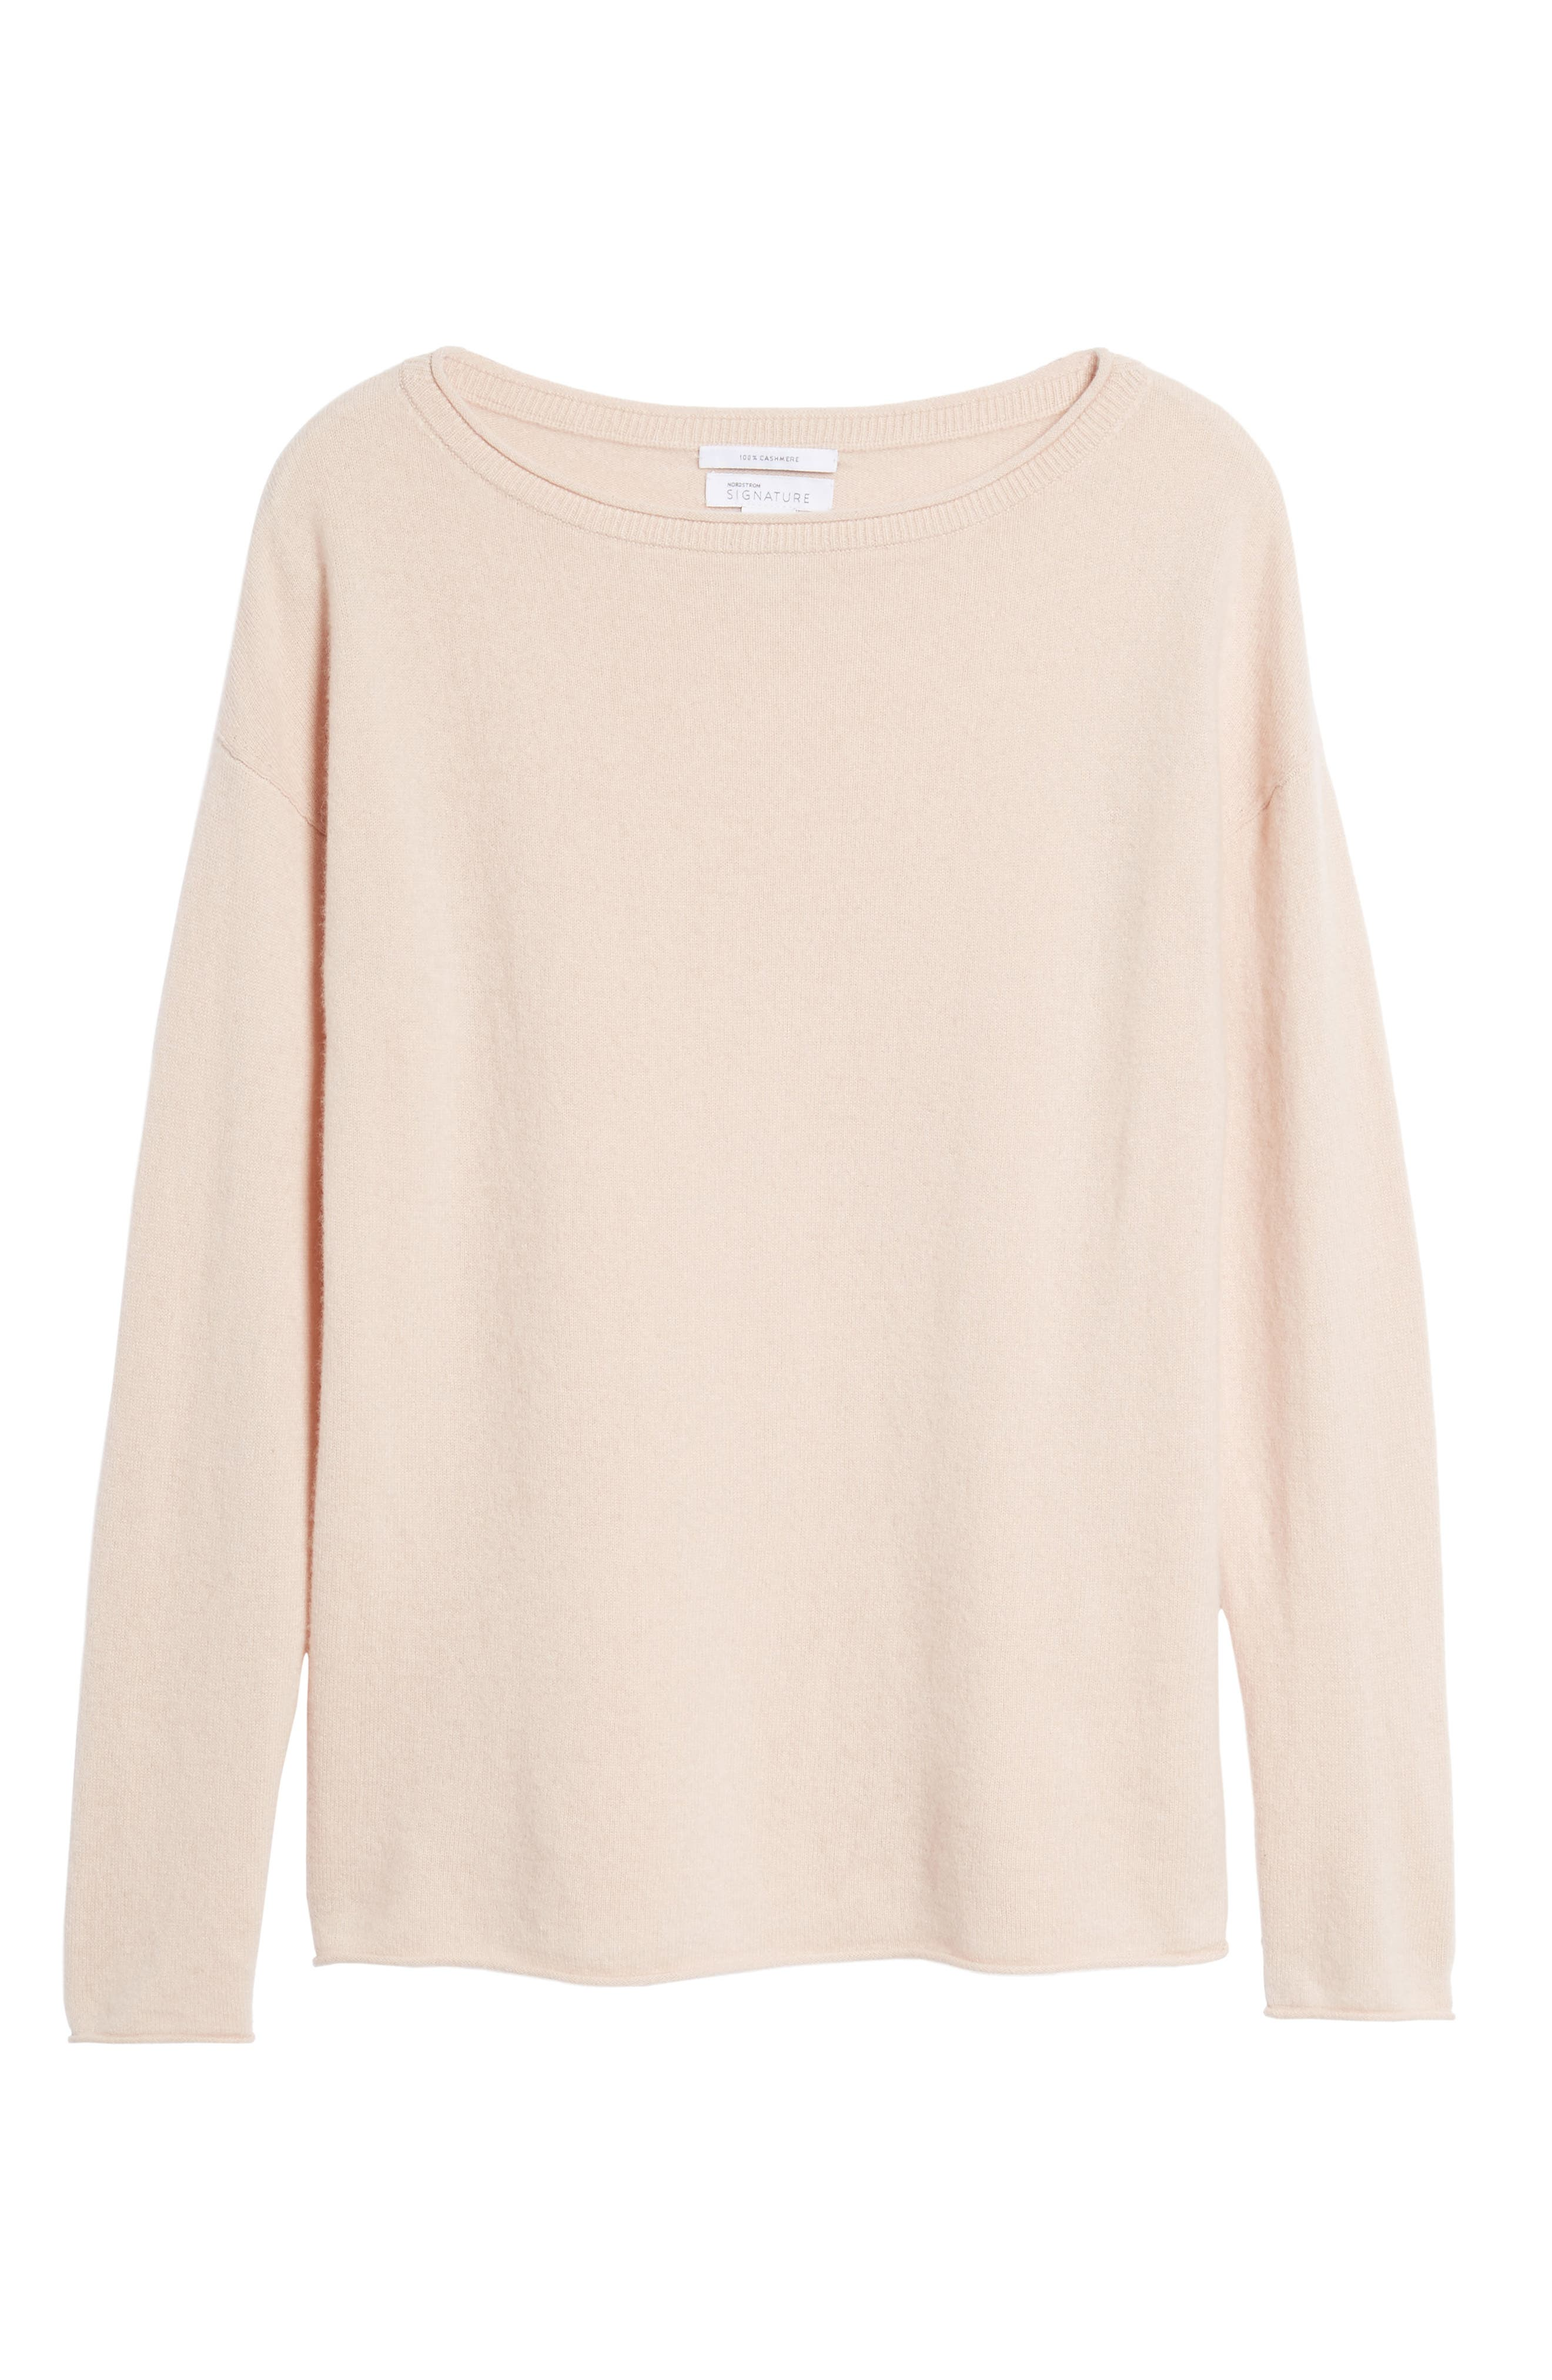 Boiled Cashmere Sweater,                             Alternate thumbnail 6, color,                             Pink Peach